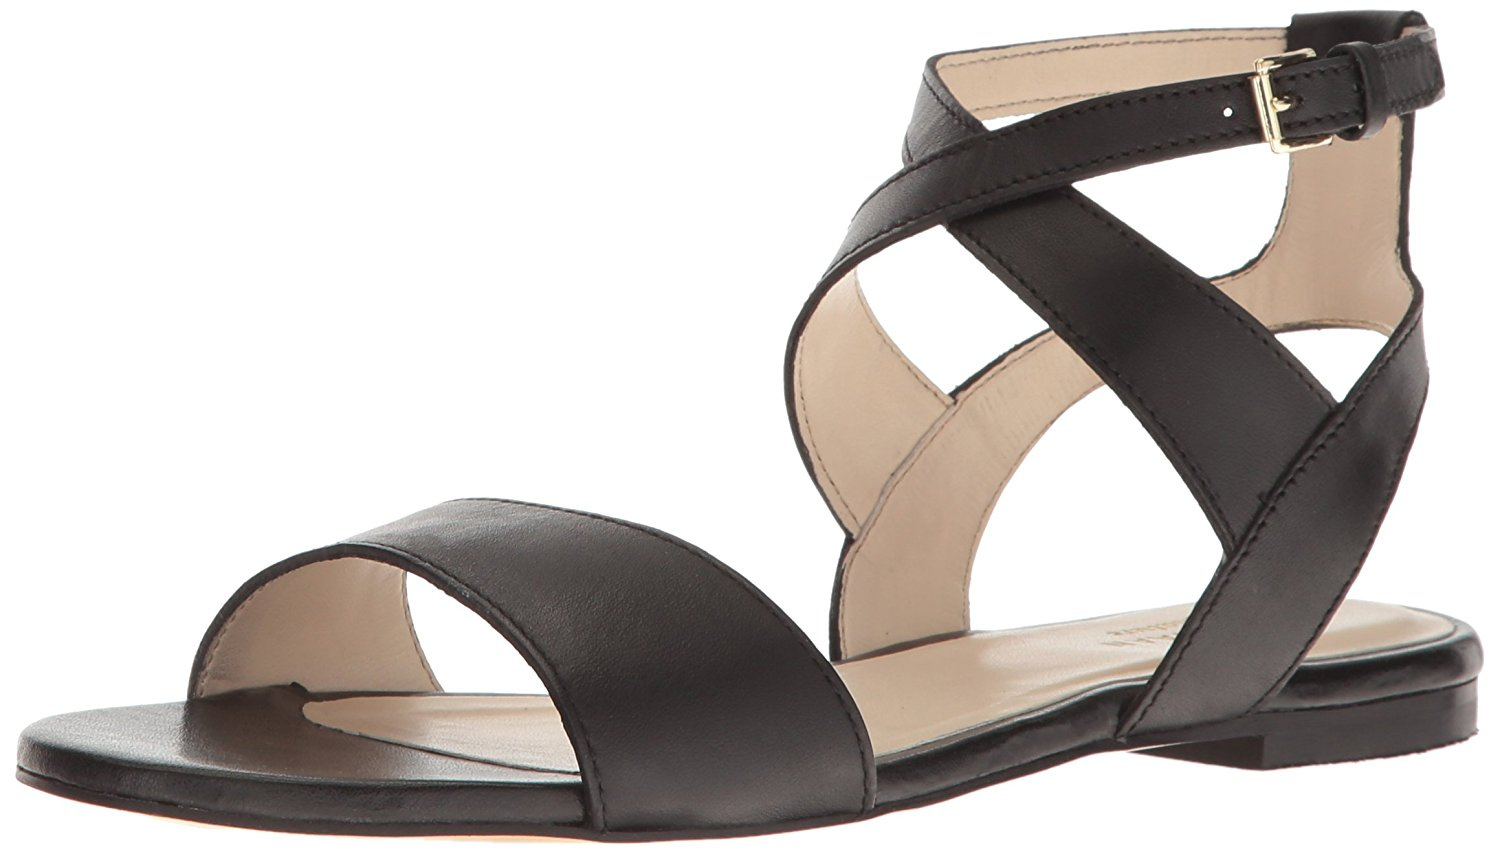 Cole Haan Womens Fenley Sandal Open Toe Casual Ankle Strap Sandals